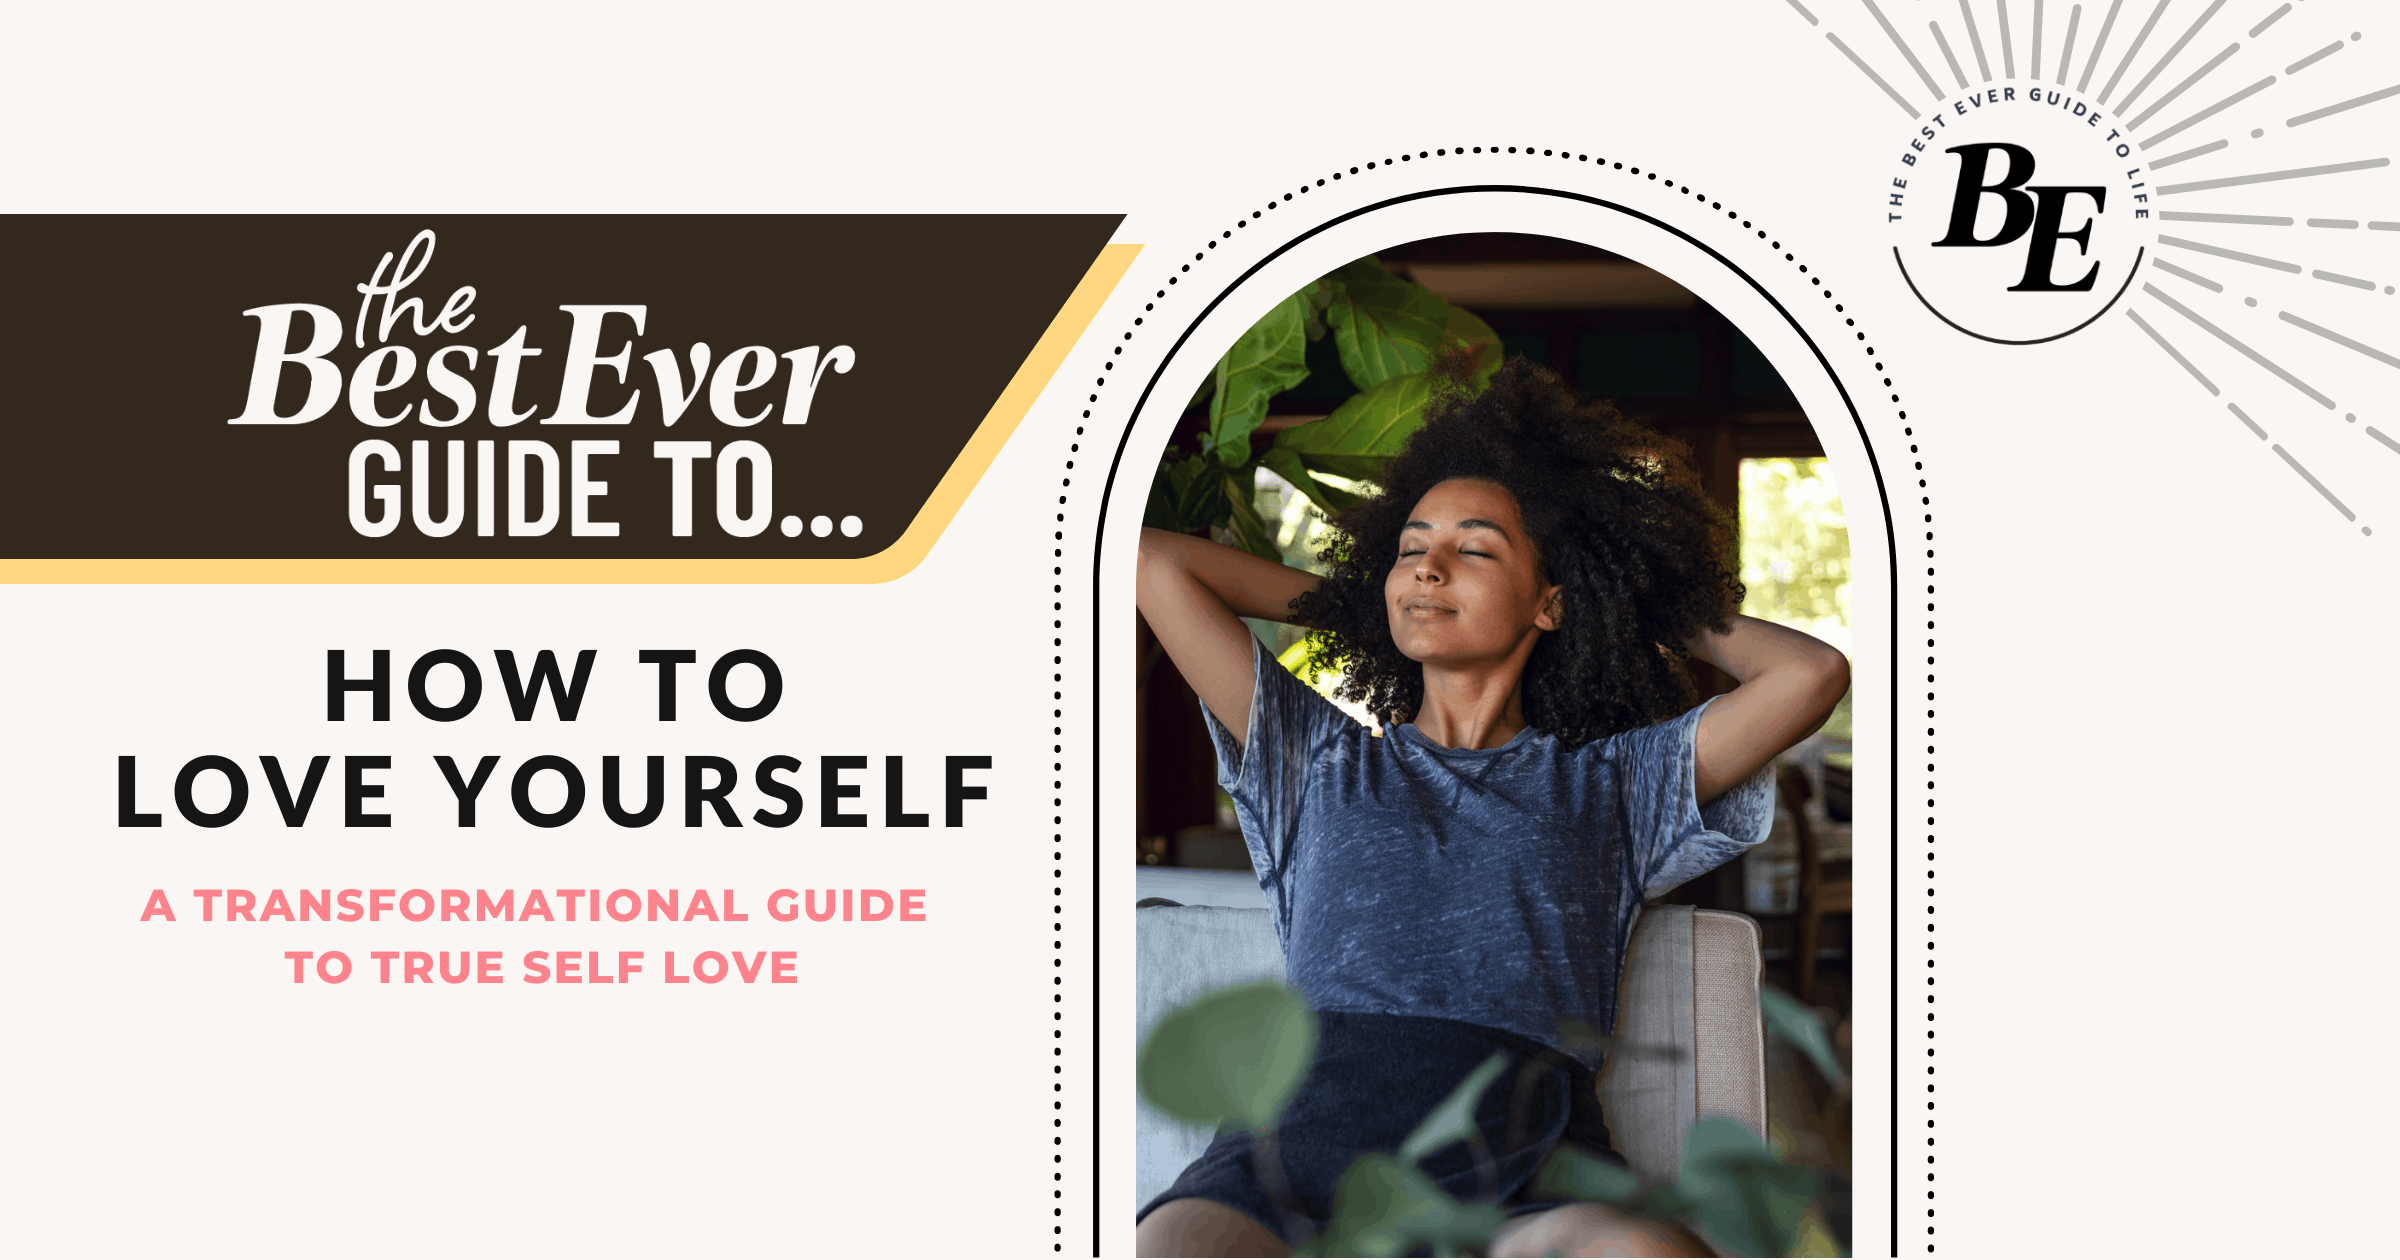 How to Love Yourself Guide